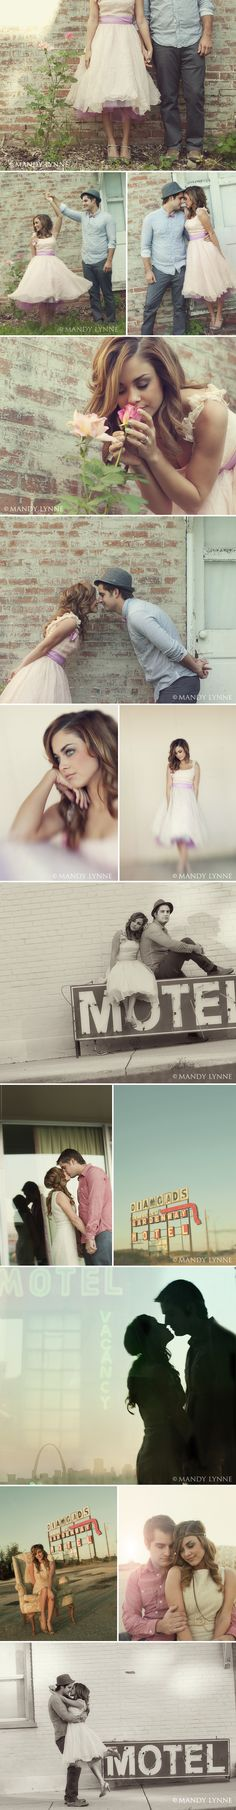 cute couples poses!